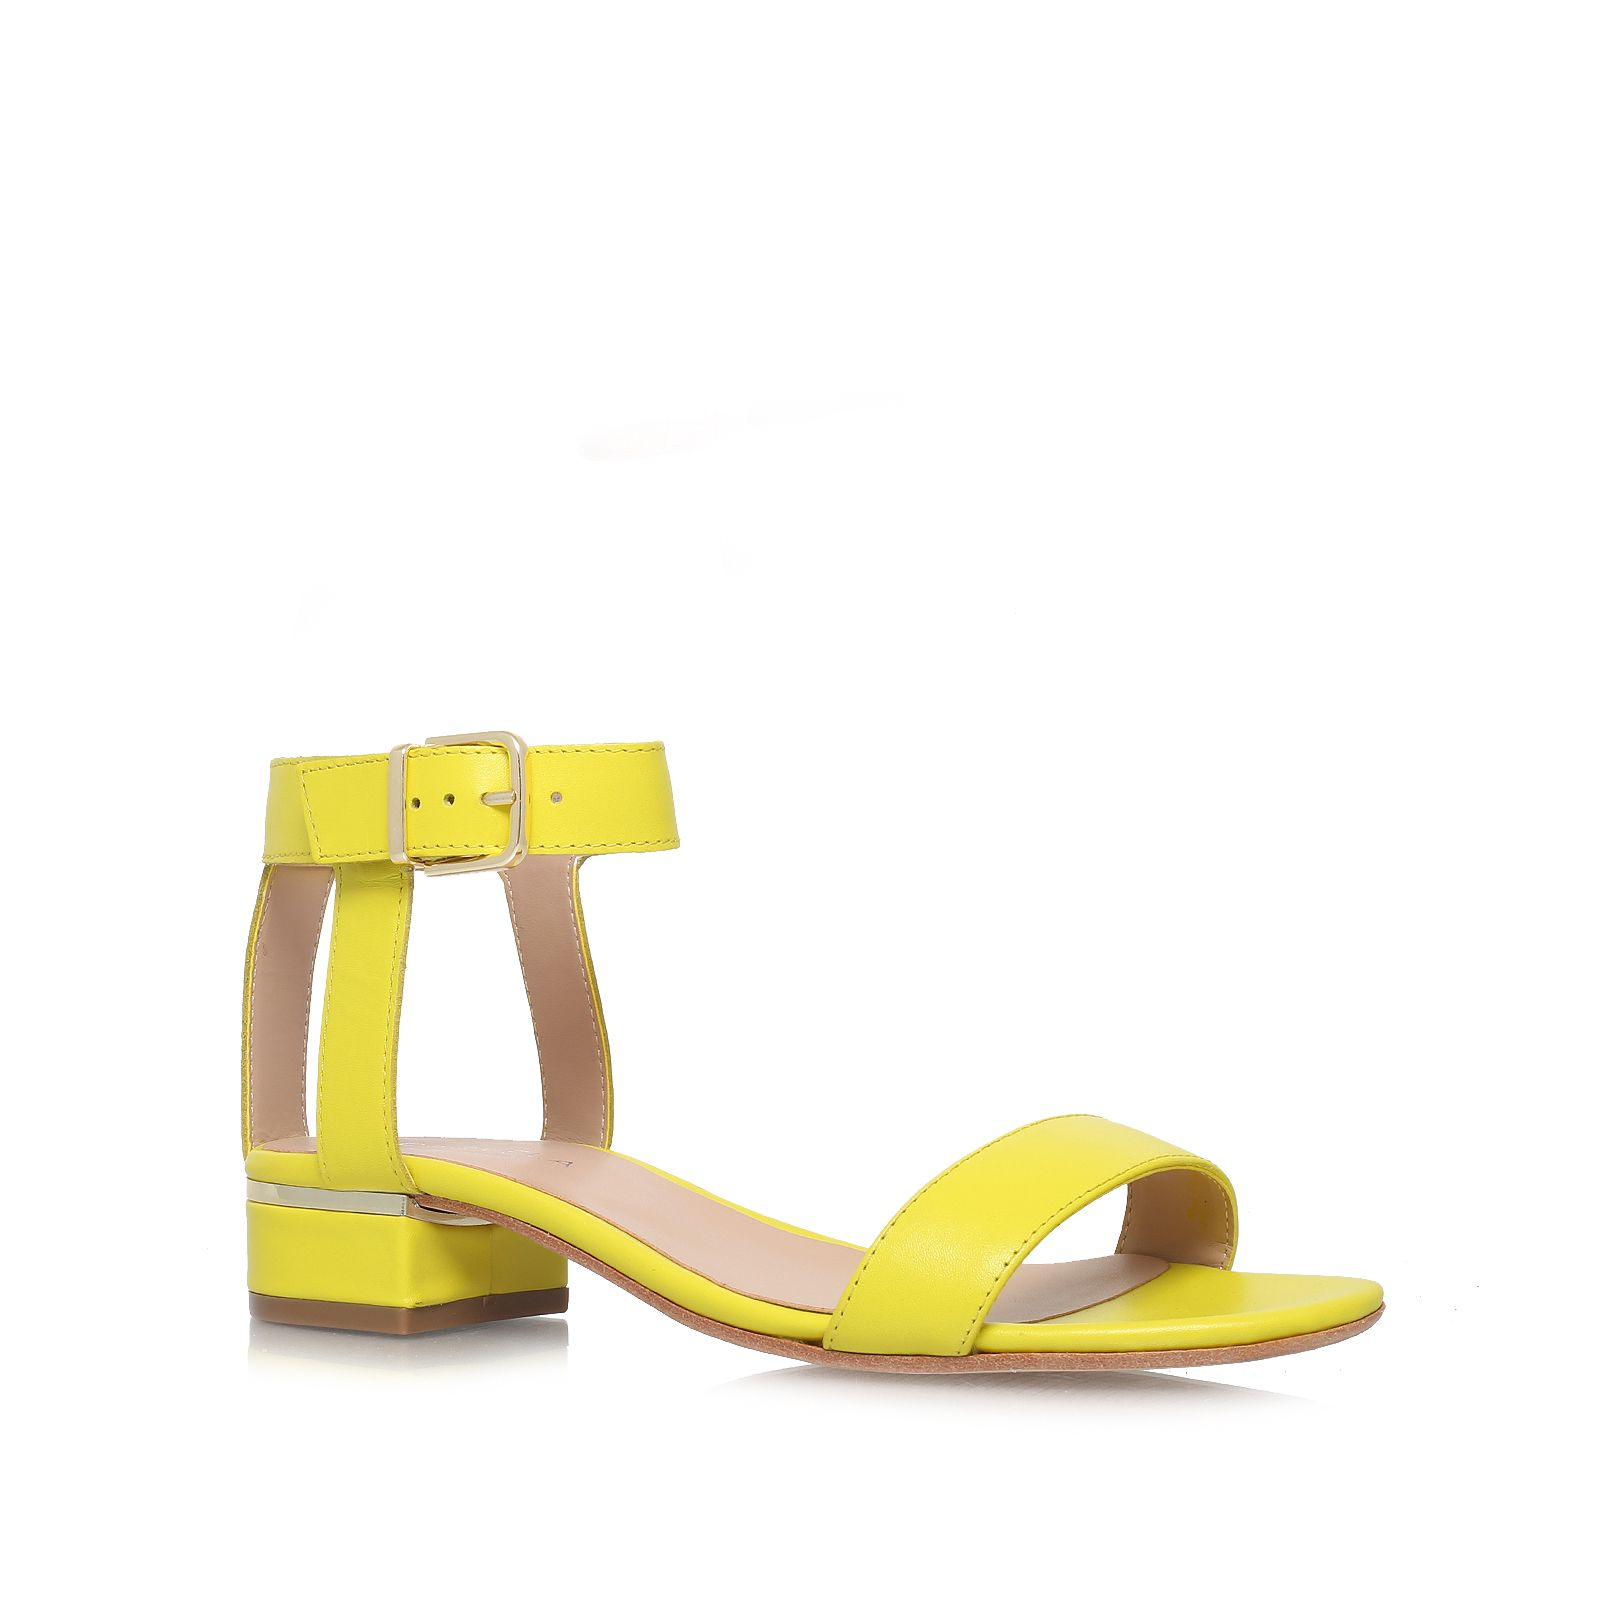 Kandle low heel sandals